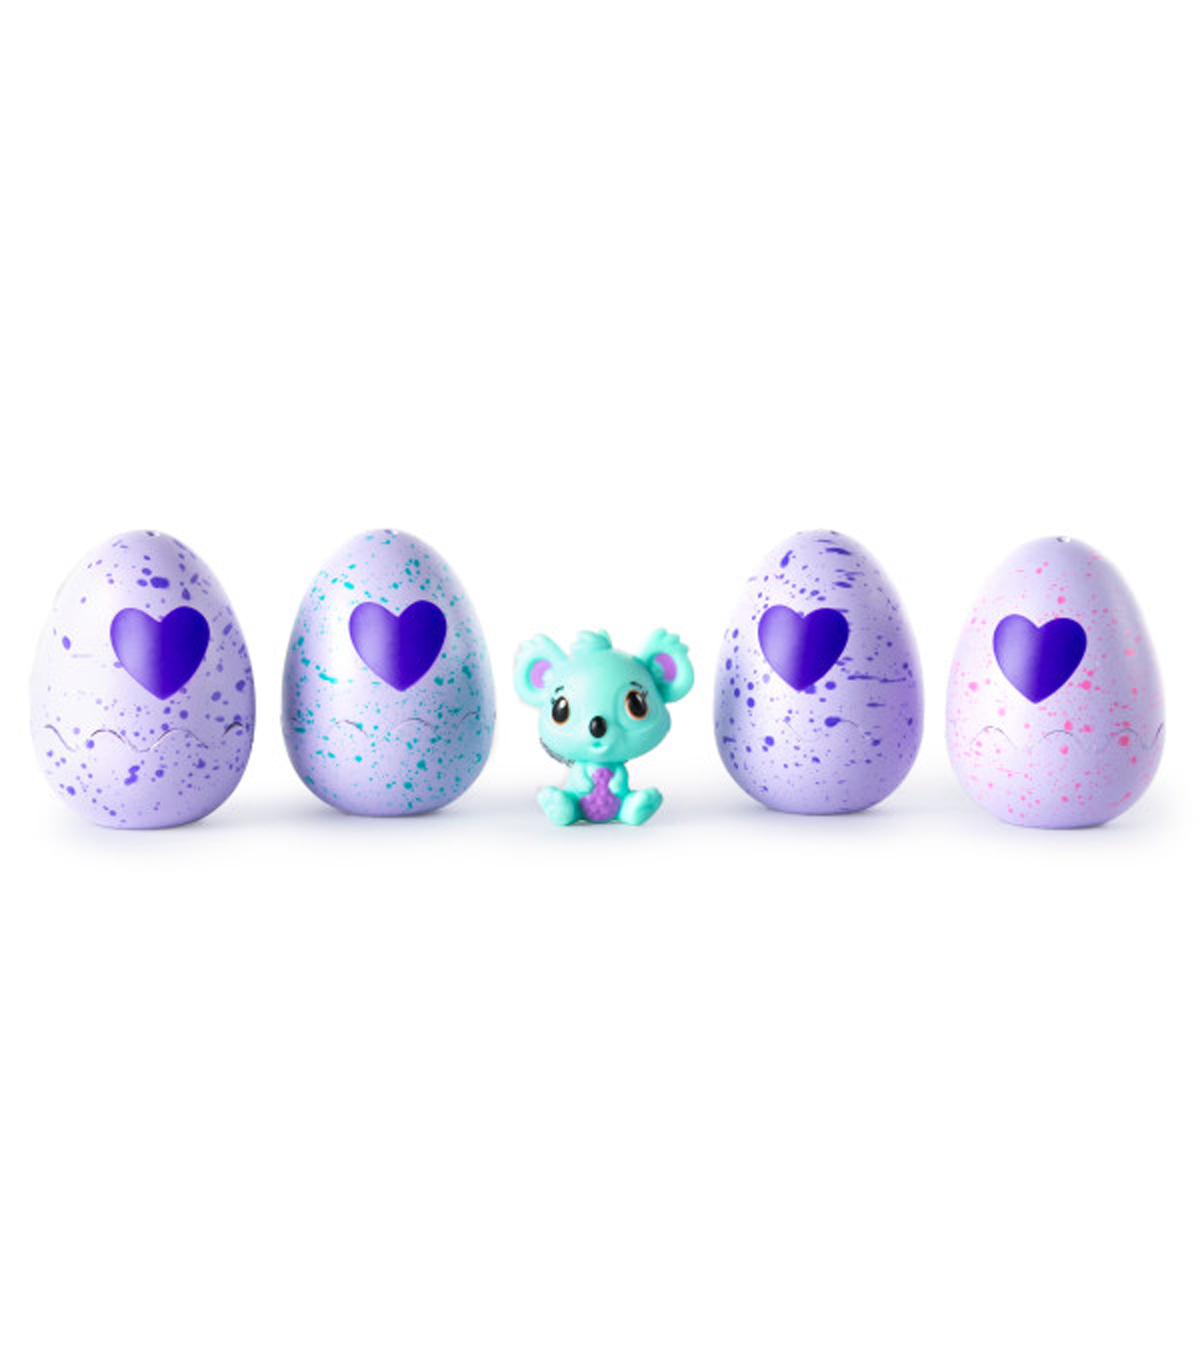 Hatchimals CollEGGtibles 4-Pack & Bonus CollEGGtible